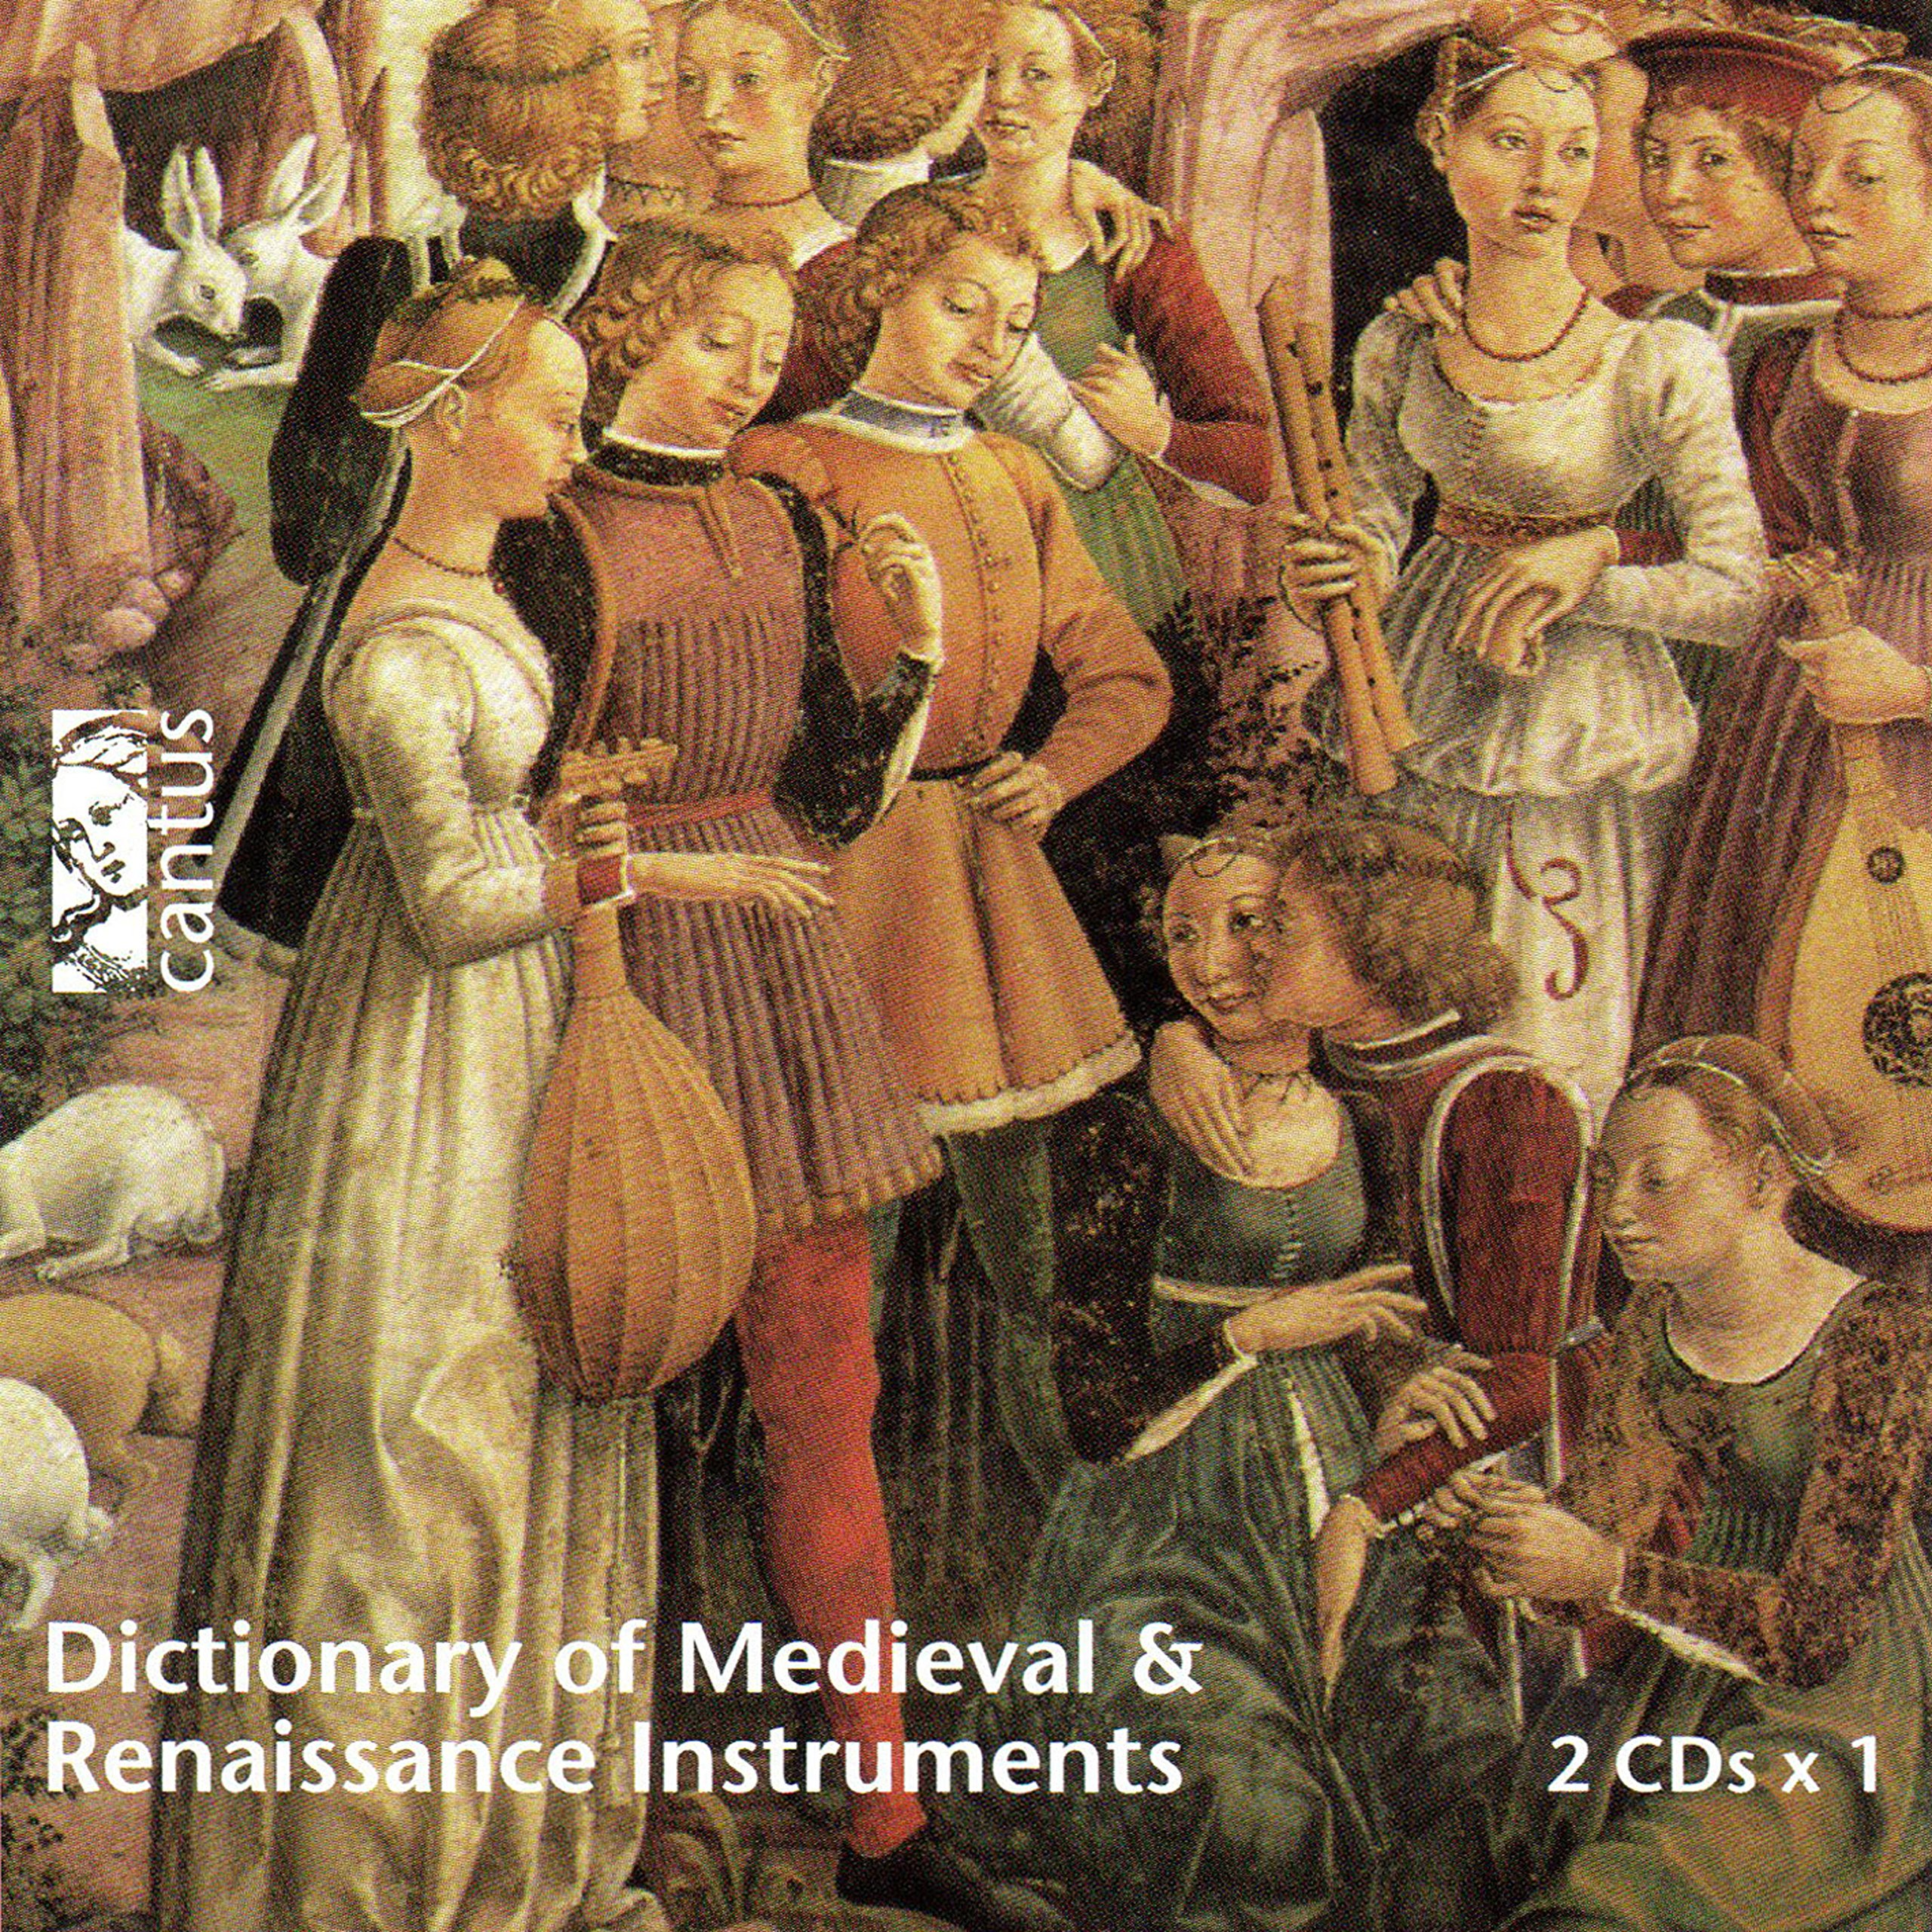 Dictionary Medieval & Renaissance Instruments by Cantus